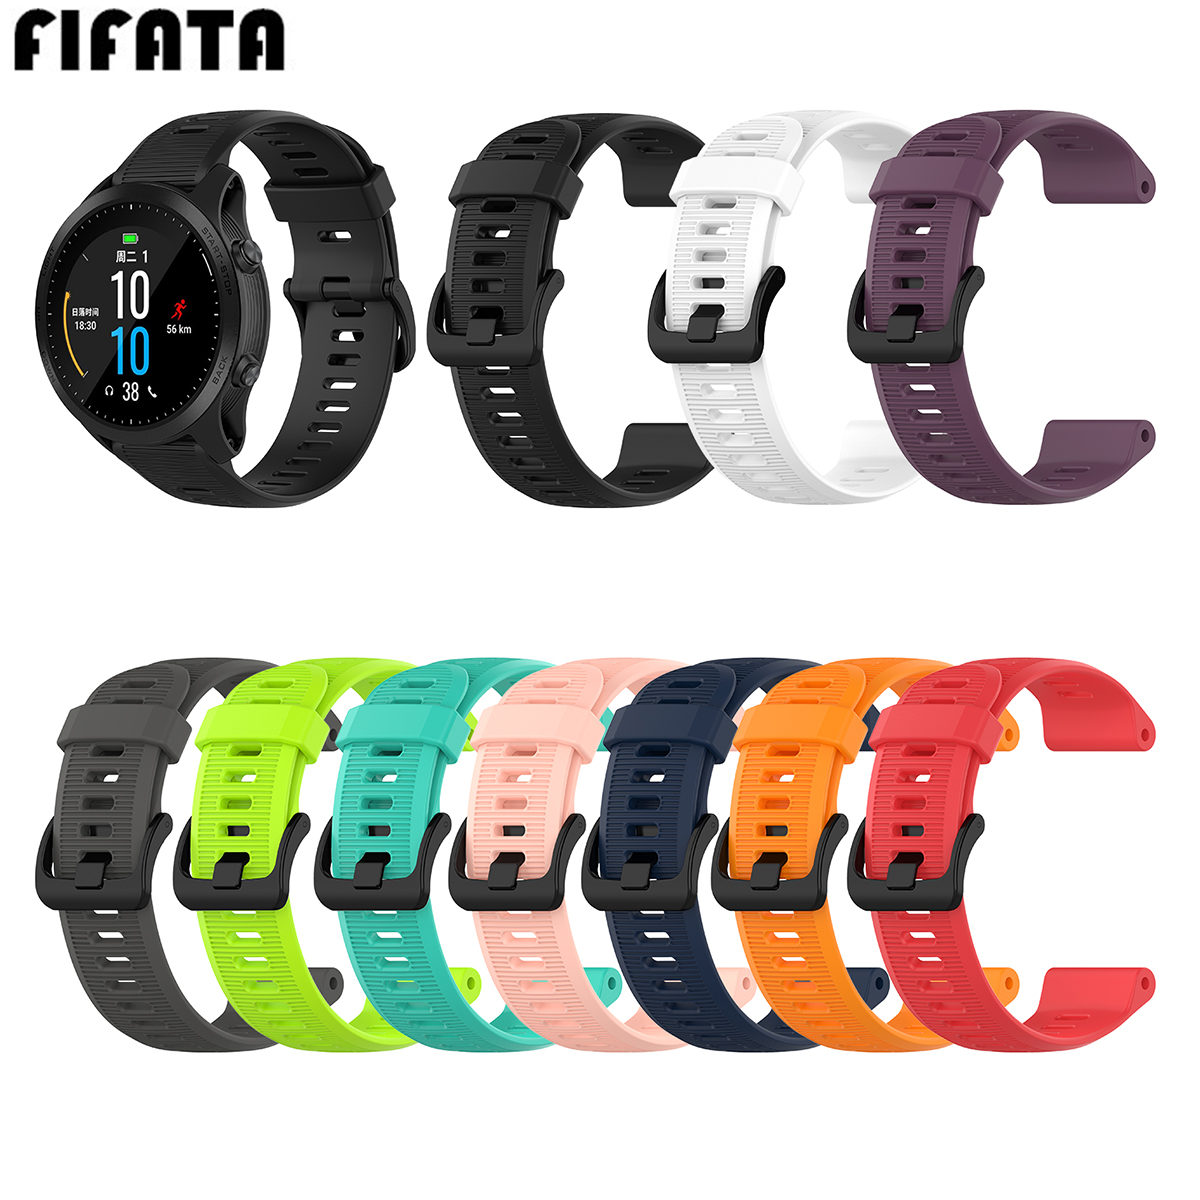 FIFATA Silicone Watch Strap For Garmin Forerunner 945 935 Fienx5/Plus Quatix5 Approach S60 22mm Wristband Replace Accessories